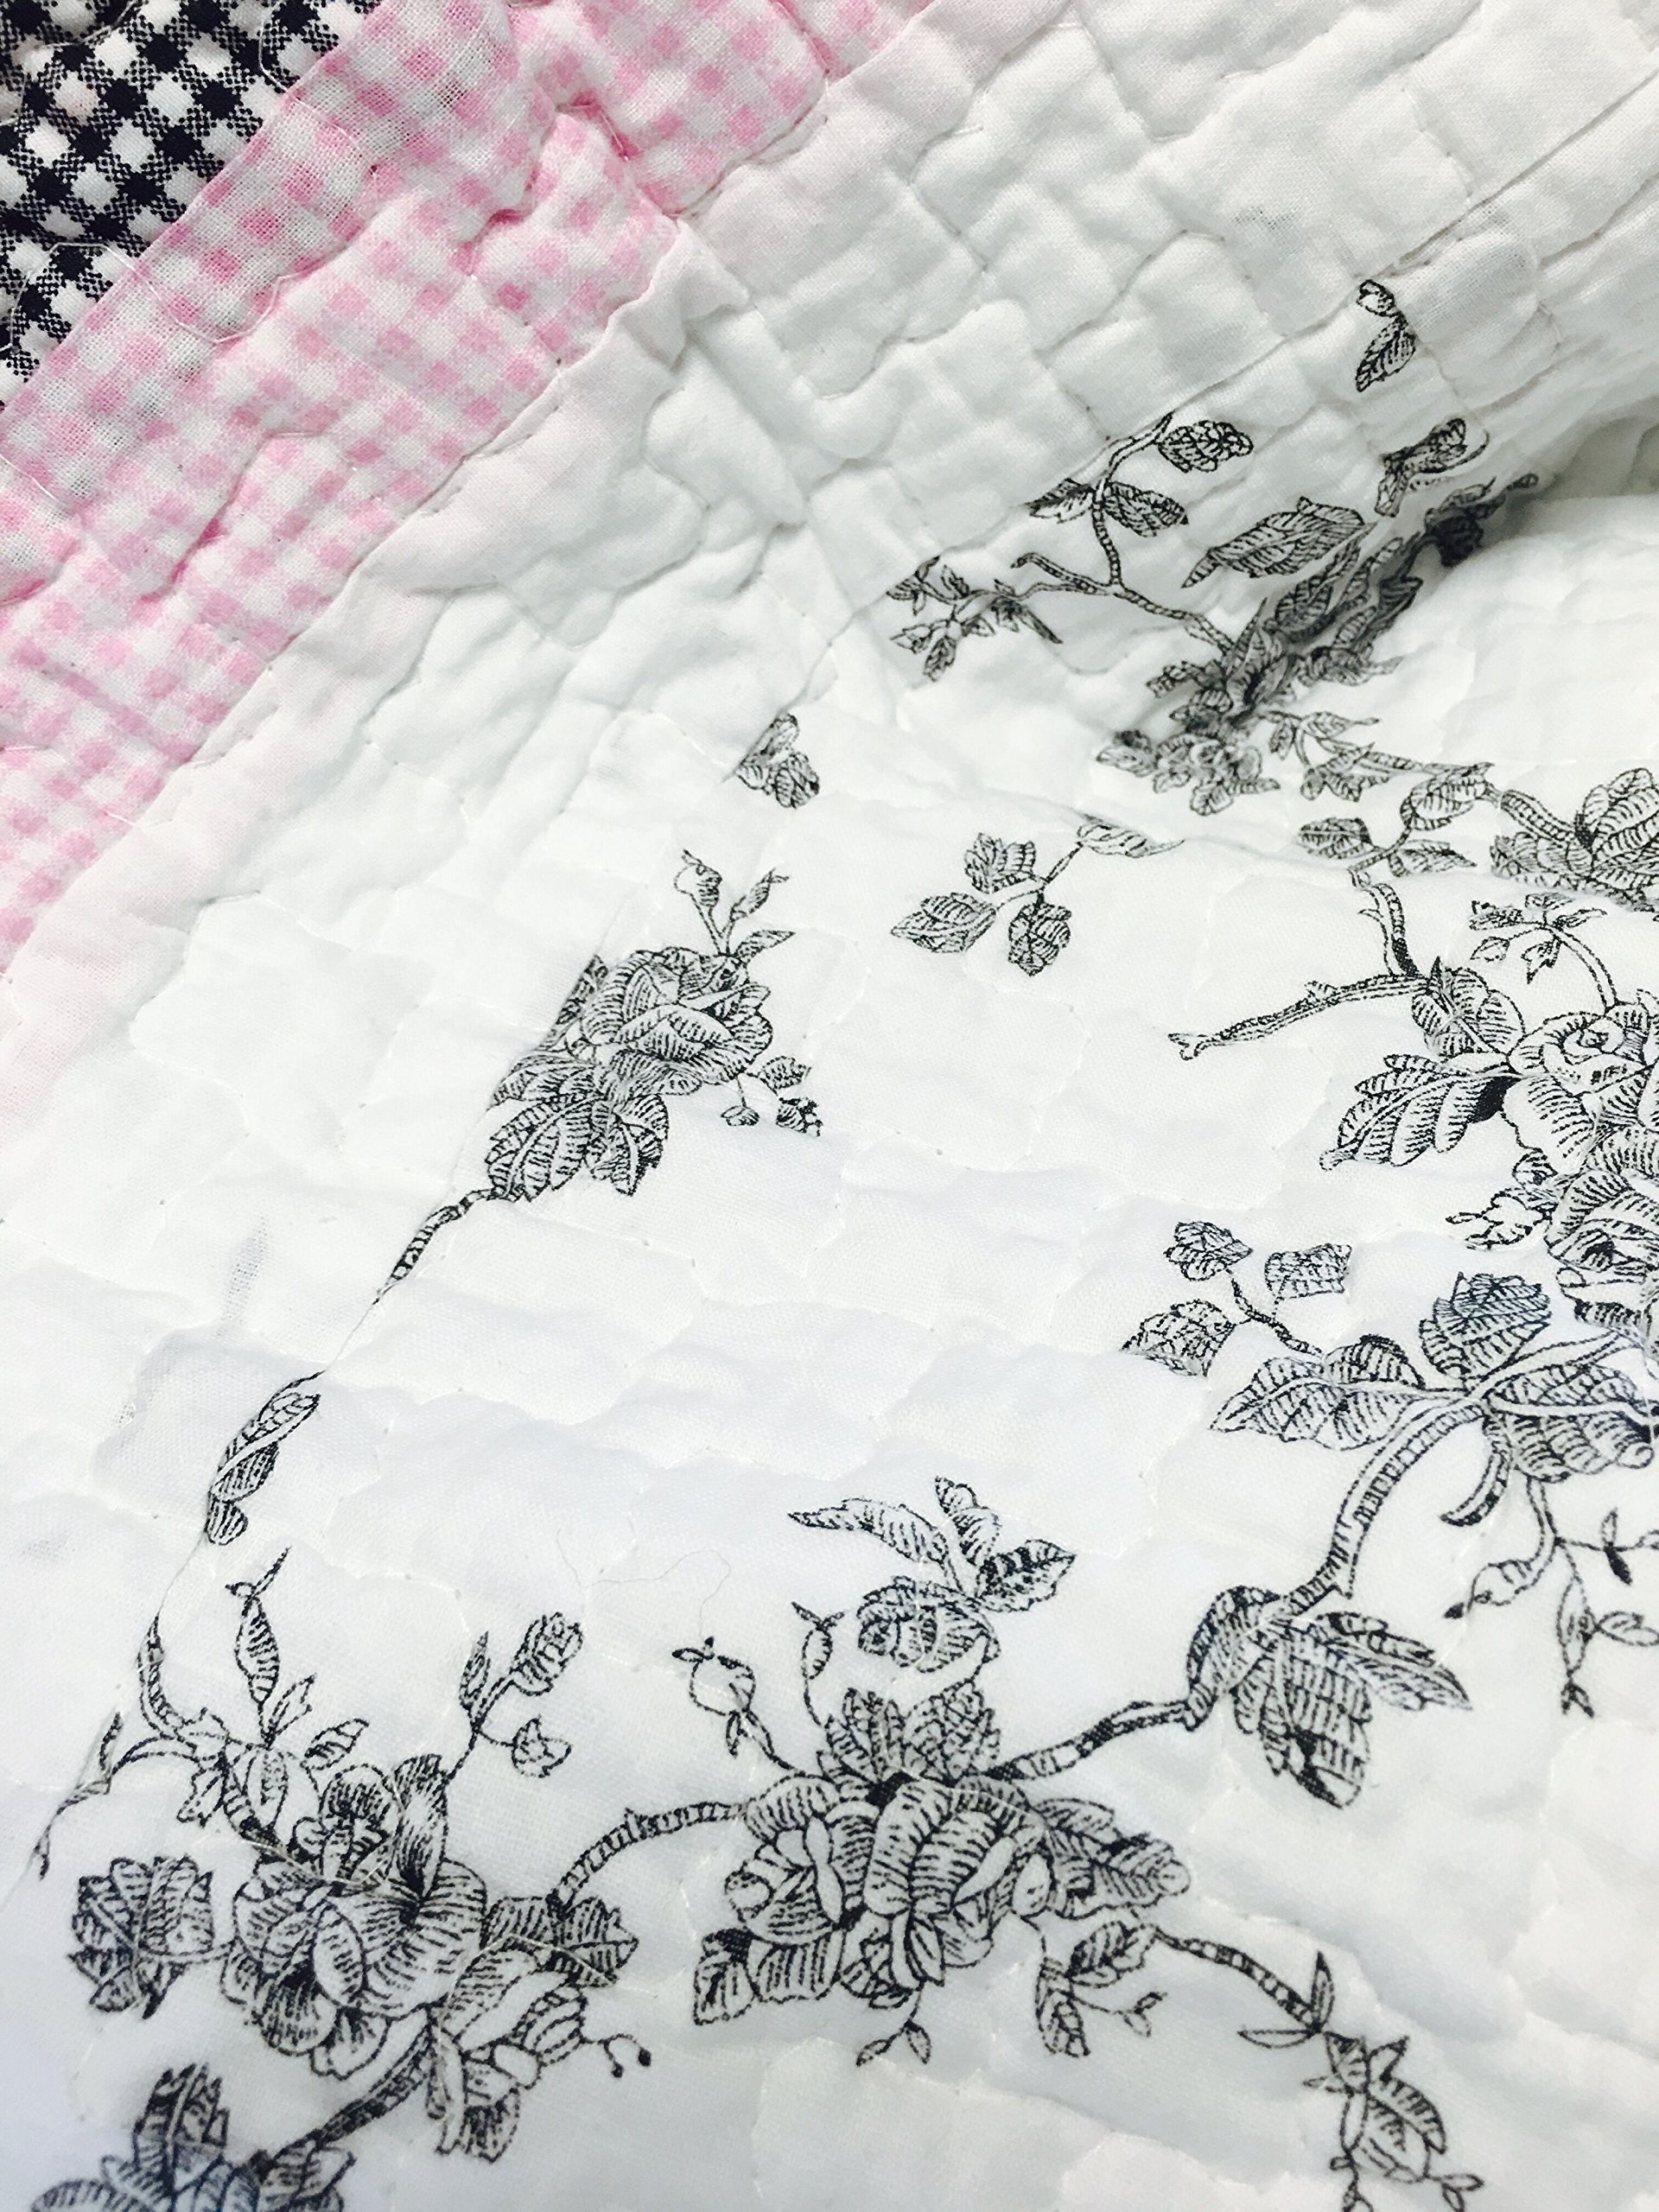 Cozy Line Home Fashions Scottie Pup Pink White Grey Dog Flower Pattern Printed Patchwork Cotton Bedding Quilt Set Coverlet Bedspreads(Grey/White, Queen - 3 Piece: 1 Quilt + 2 Standard Shams) by Cozy Line Home Fashions (Image #5)